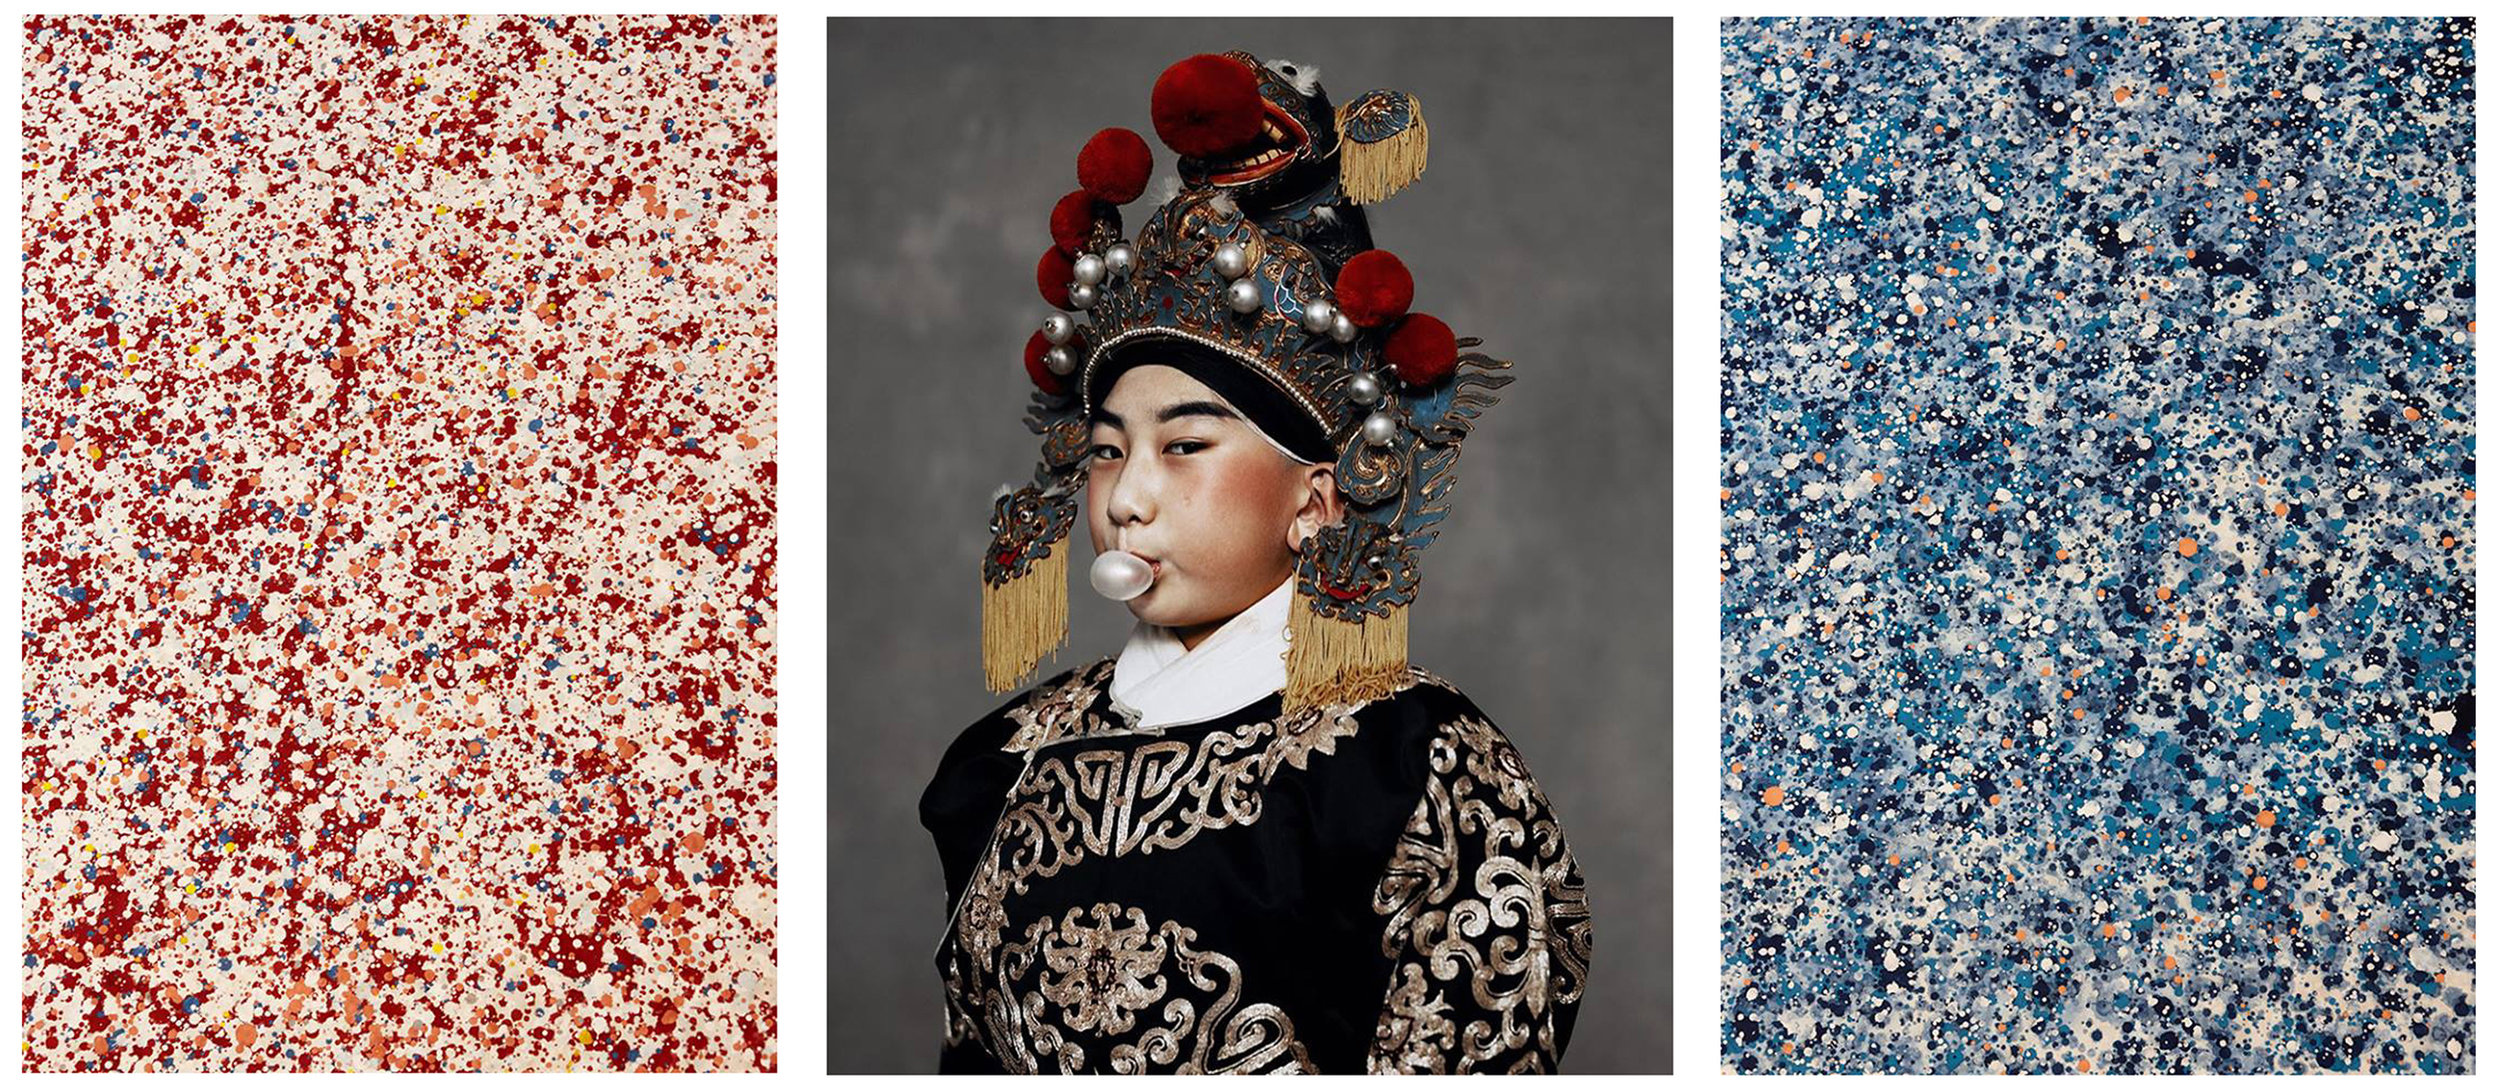 kiki-xue-exhibition-2018-galerie-hors-champs-photography-of-china.jpg